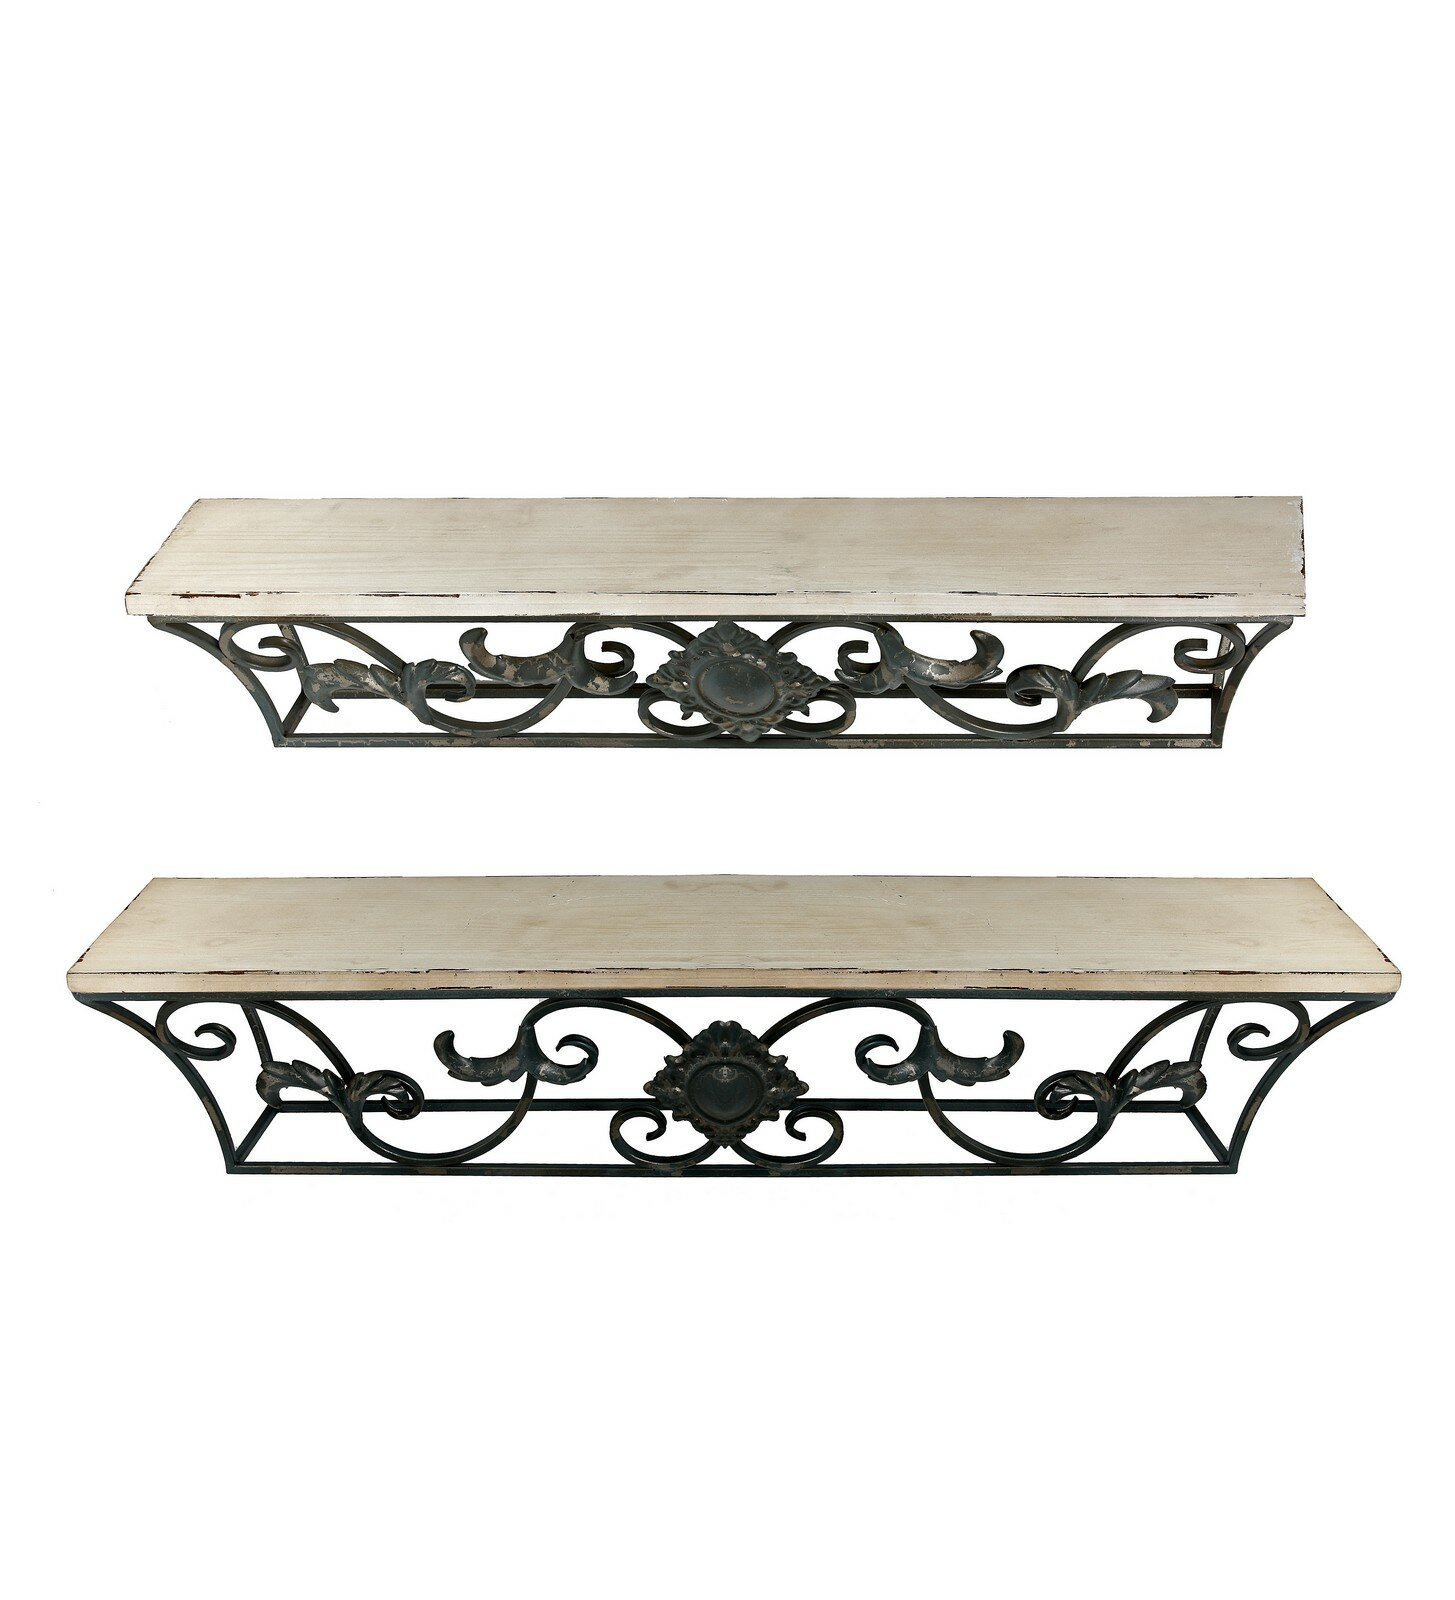 privilege iron and wood wall shelves reviews wayfair rh wayfair com wrought iron wall shelves wrought iron wall shelves